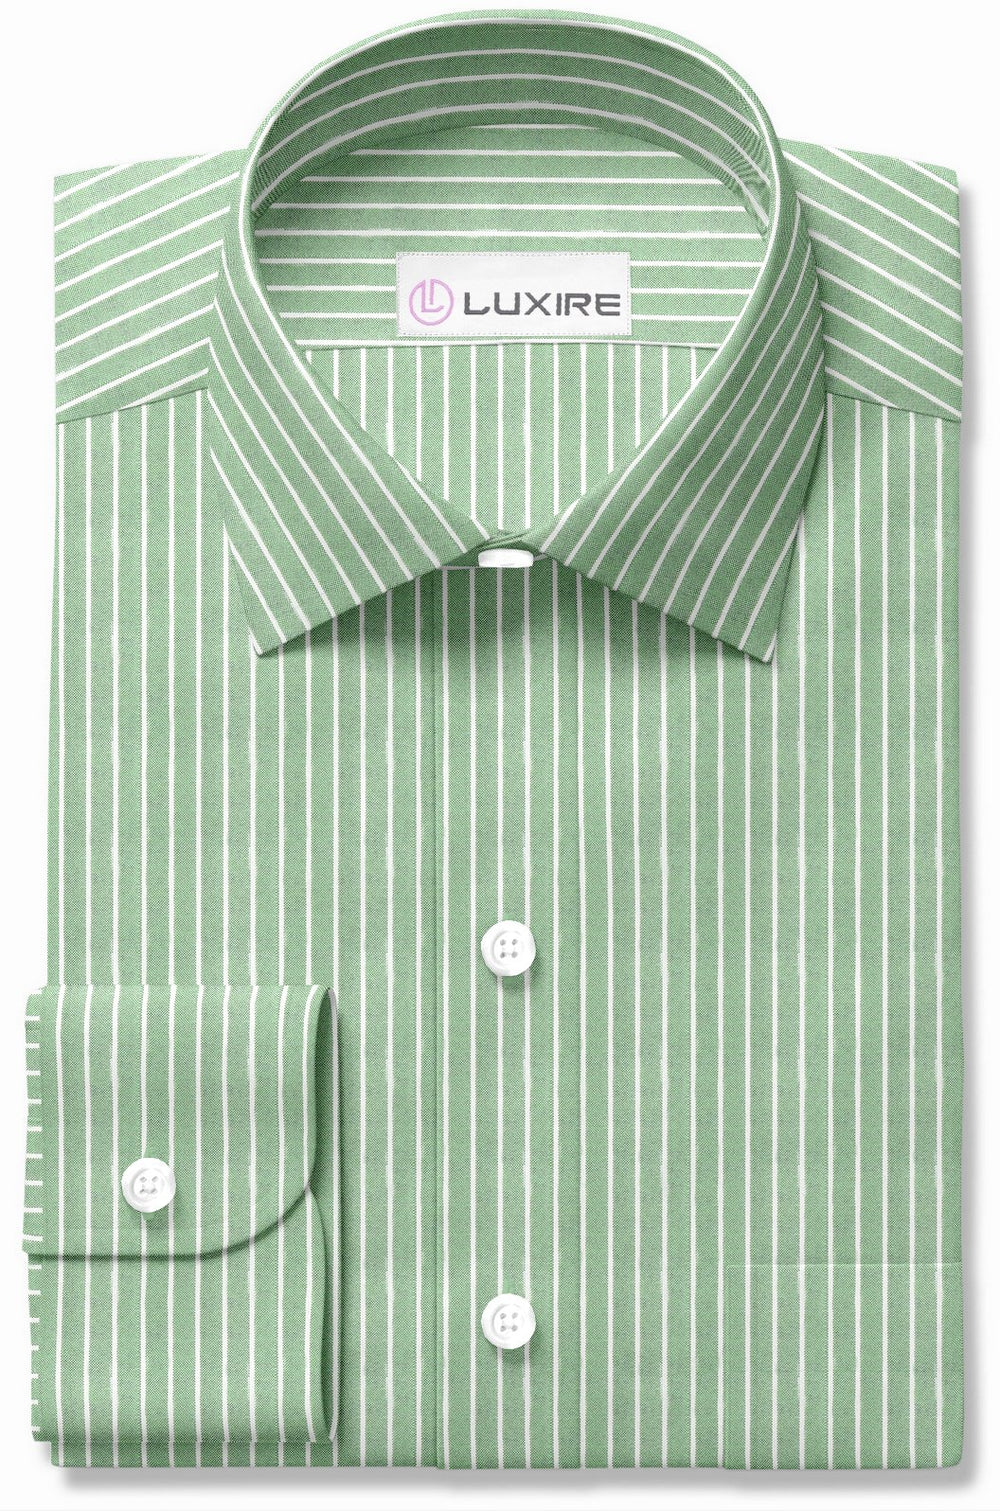 White Stripes On Fern Green Oxford (264131557)